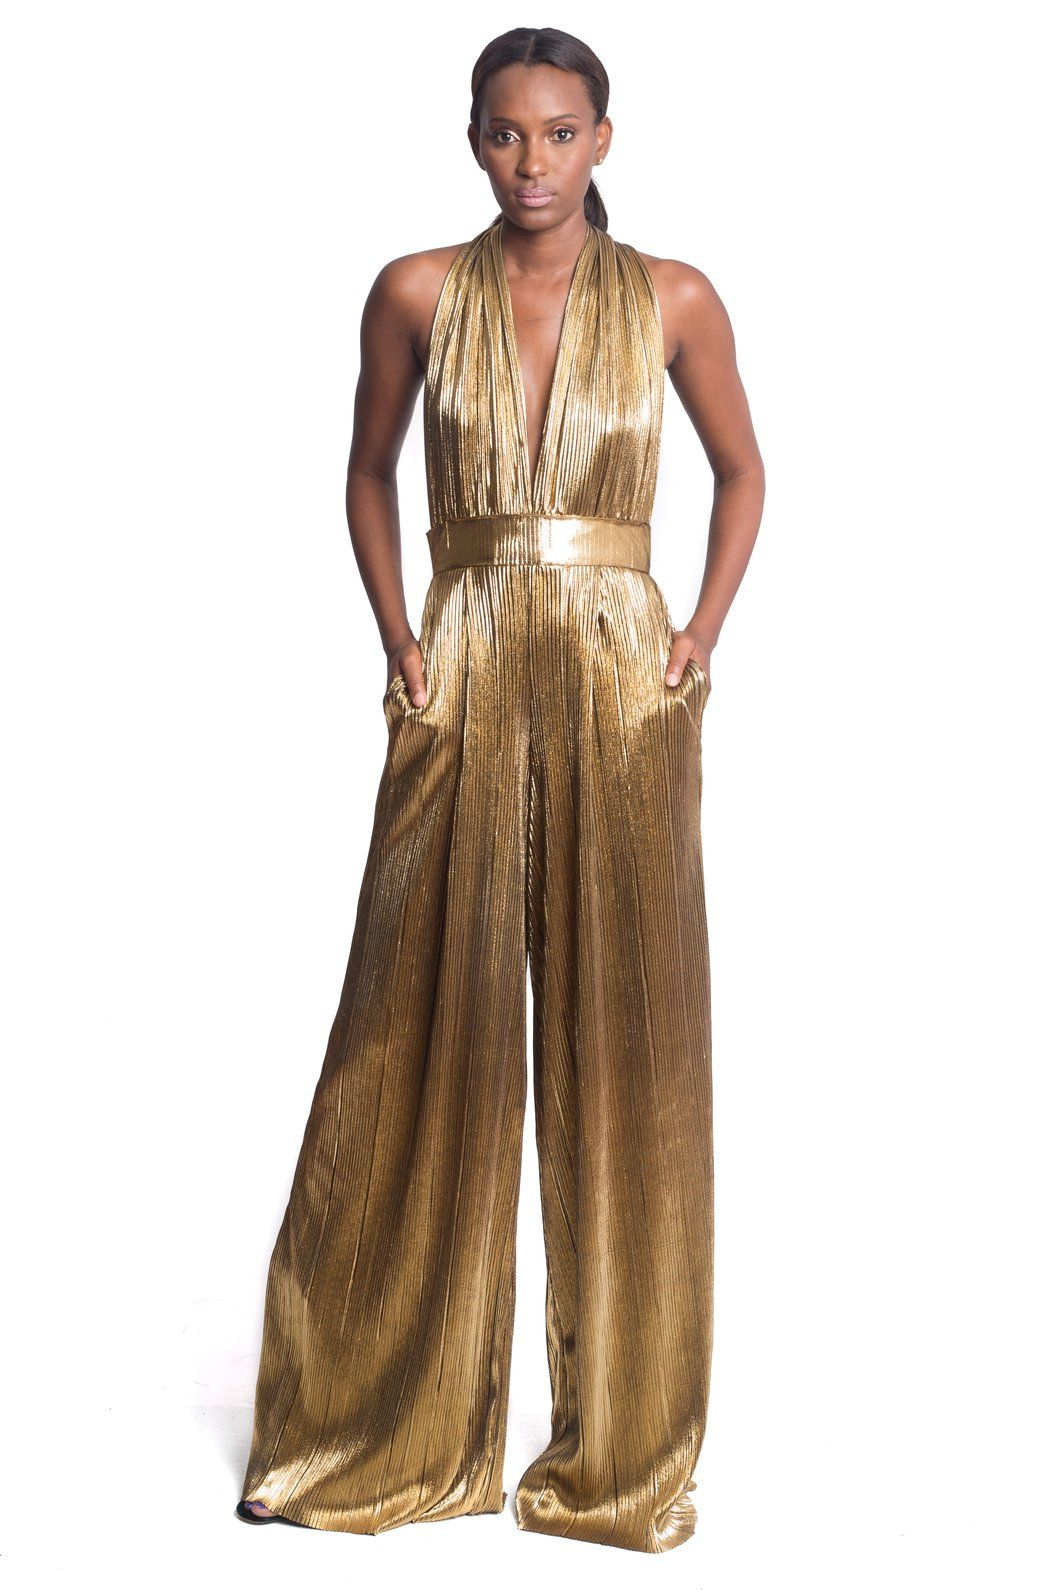 854c5f4a7f12 Limited Edition Beverly Gold Jumpsuit (50% Down Payment $214 ...